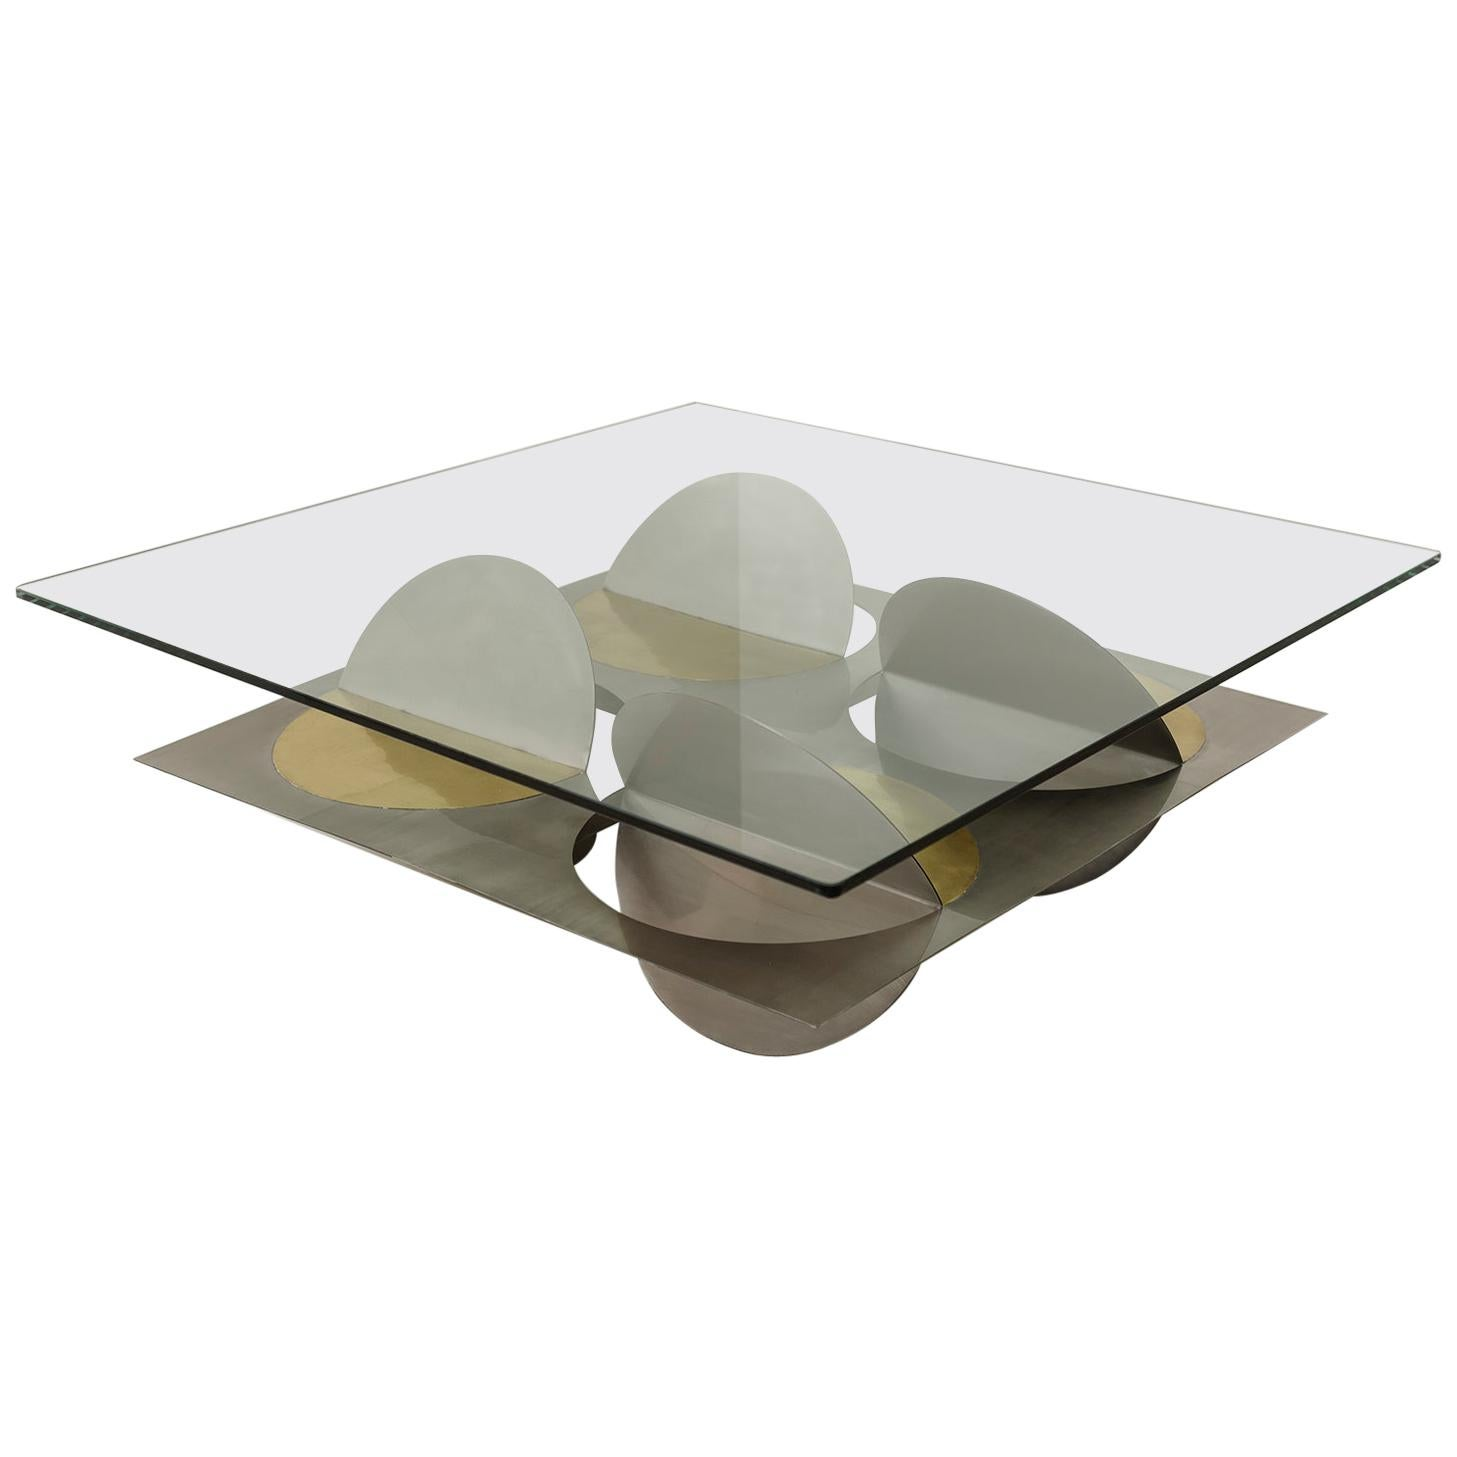 Stainless Steel Moonsky Coffee Table by Ana Volante Studio